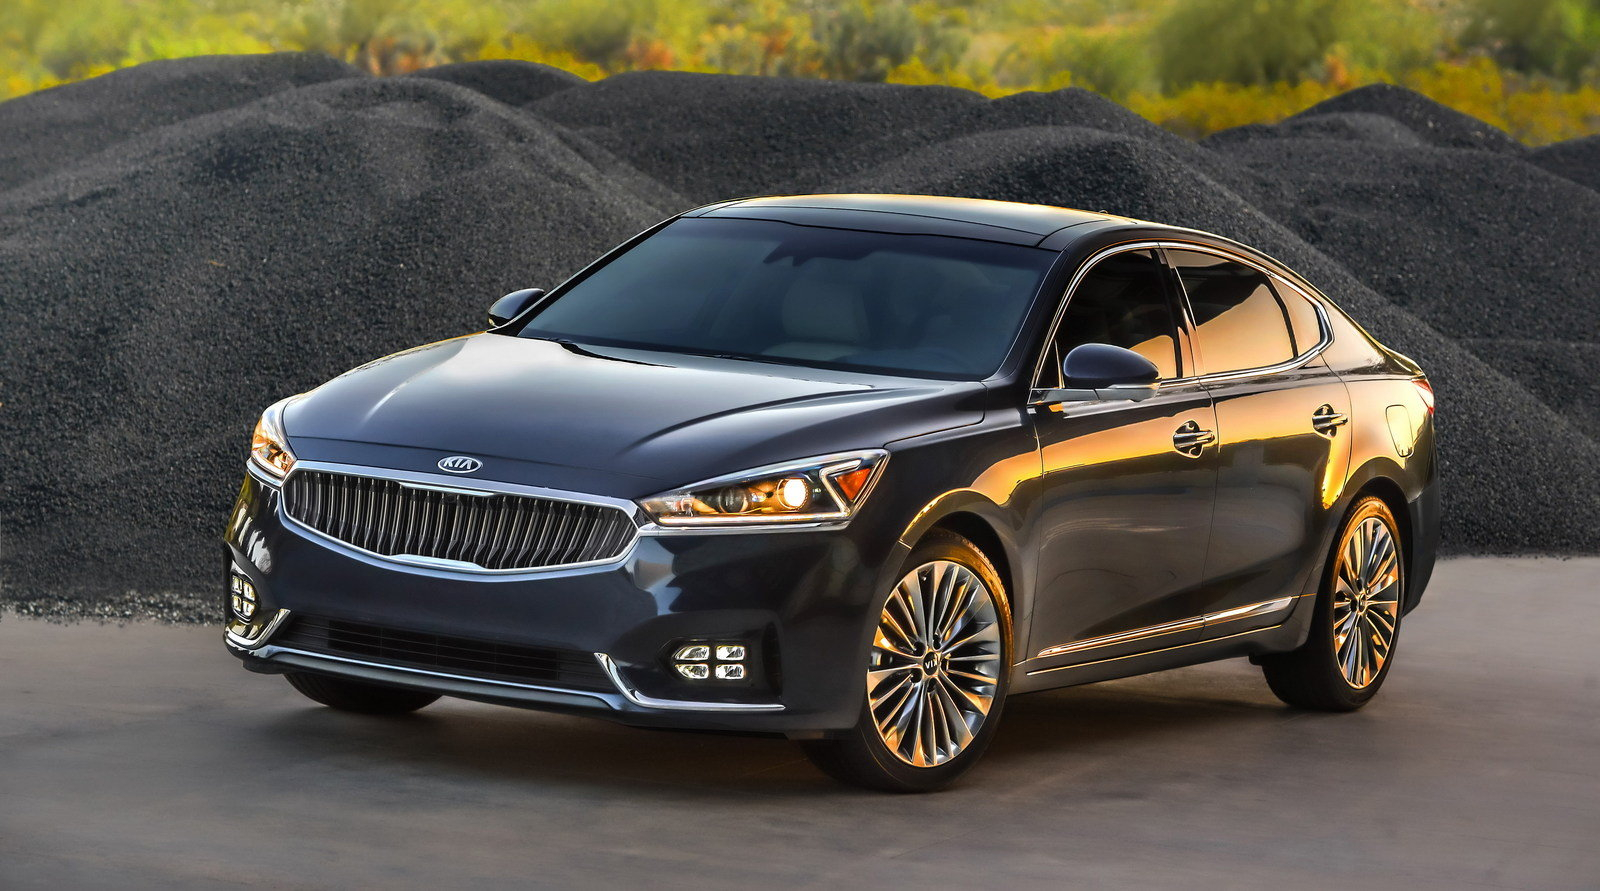 2017 Kia Cadenza | Top Speed - Kia Cadenza V6 Transmission Options, Release Date